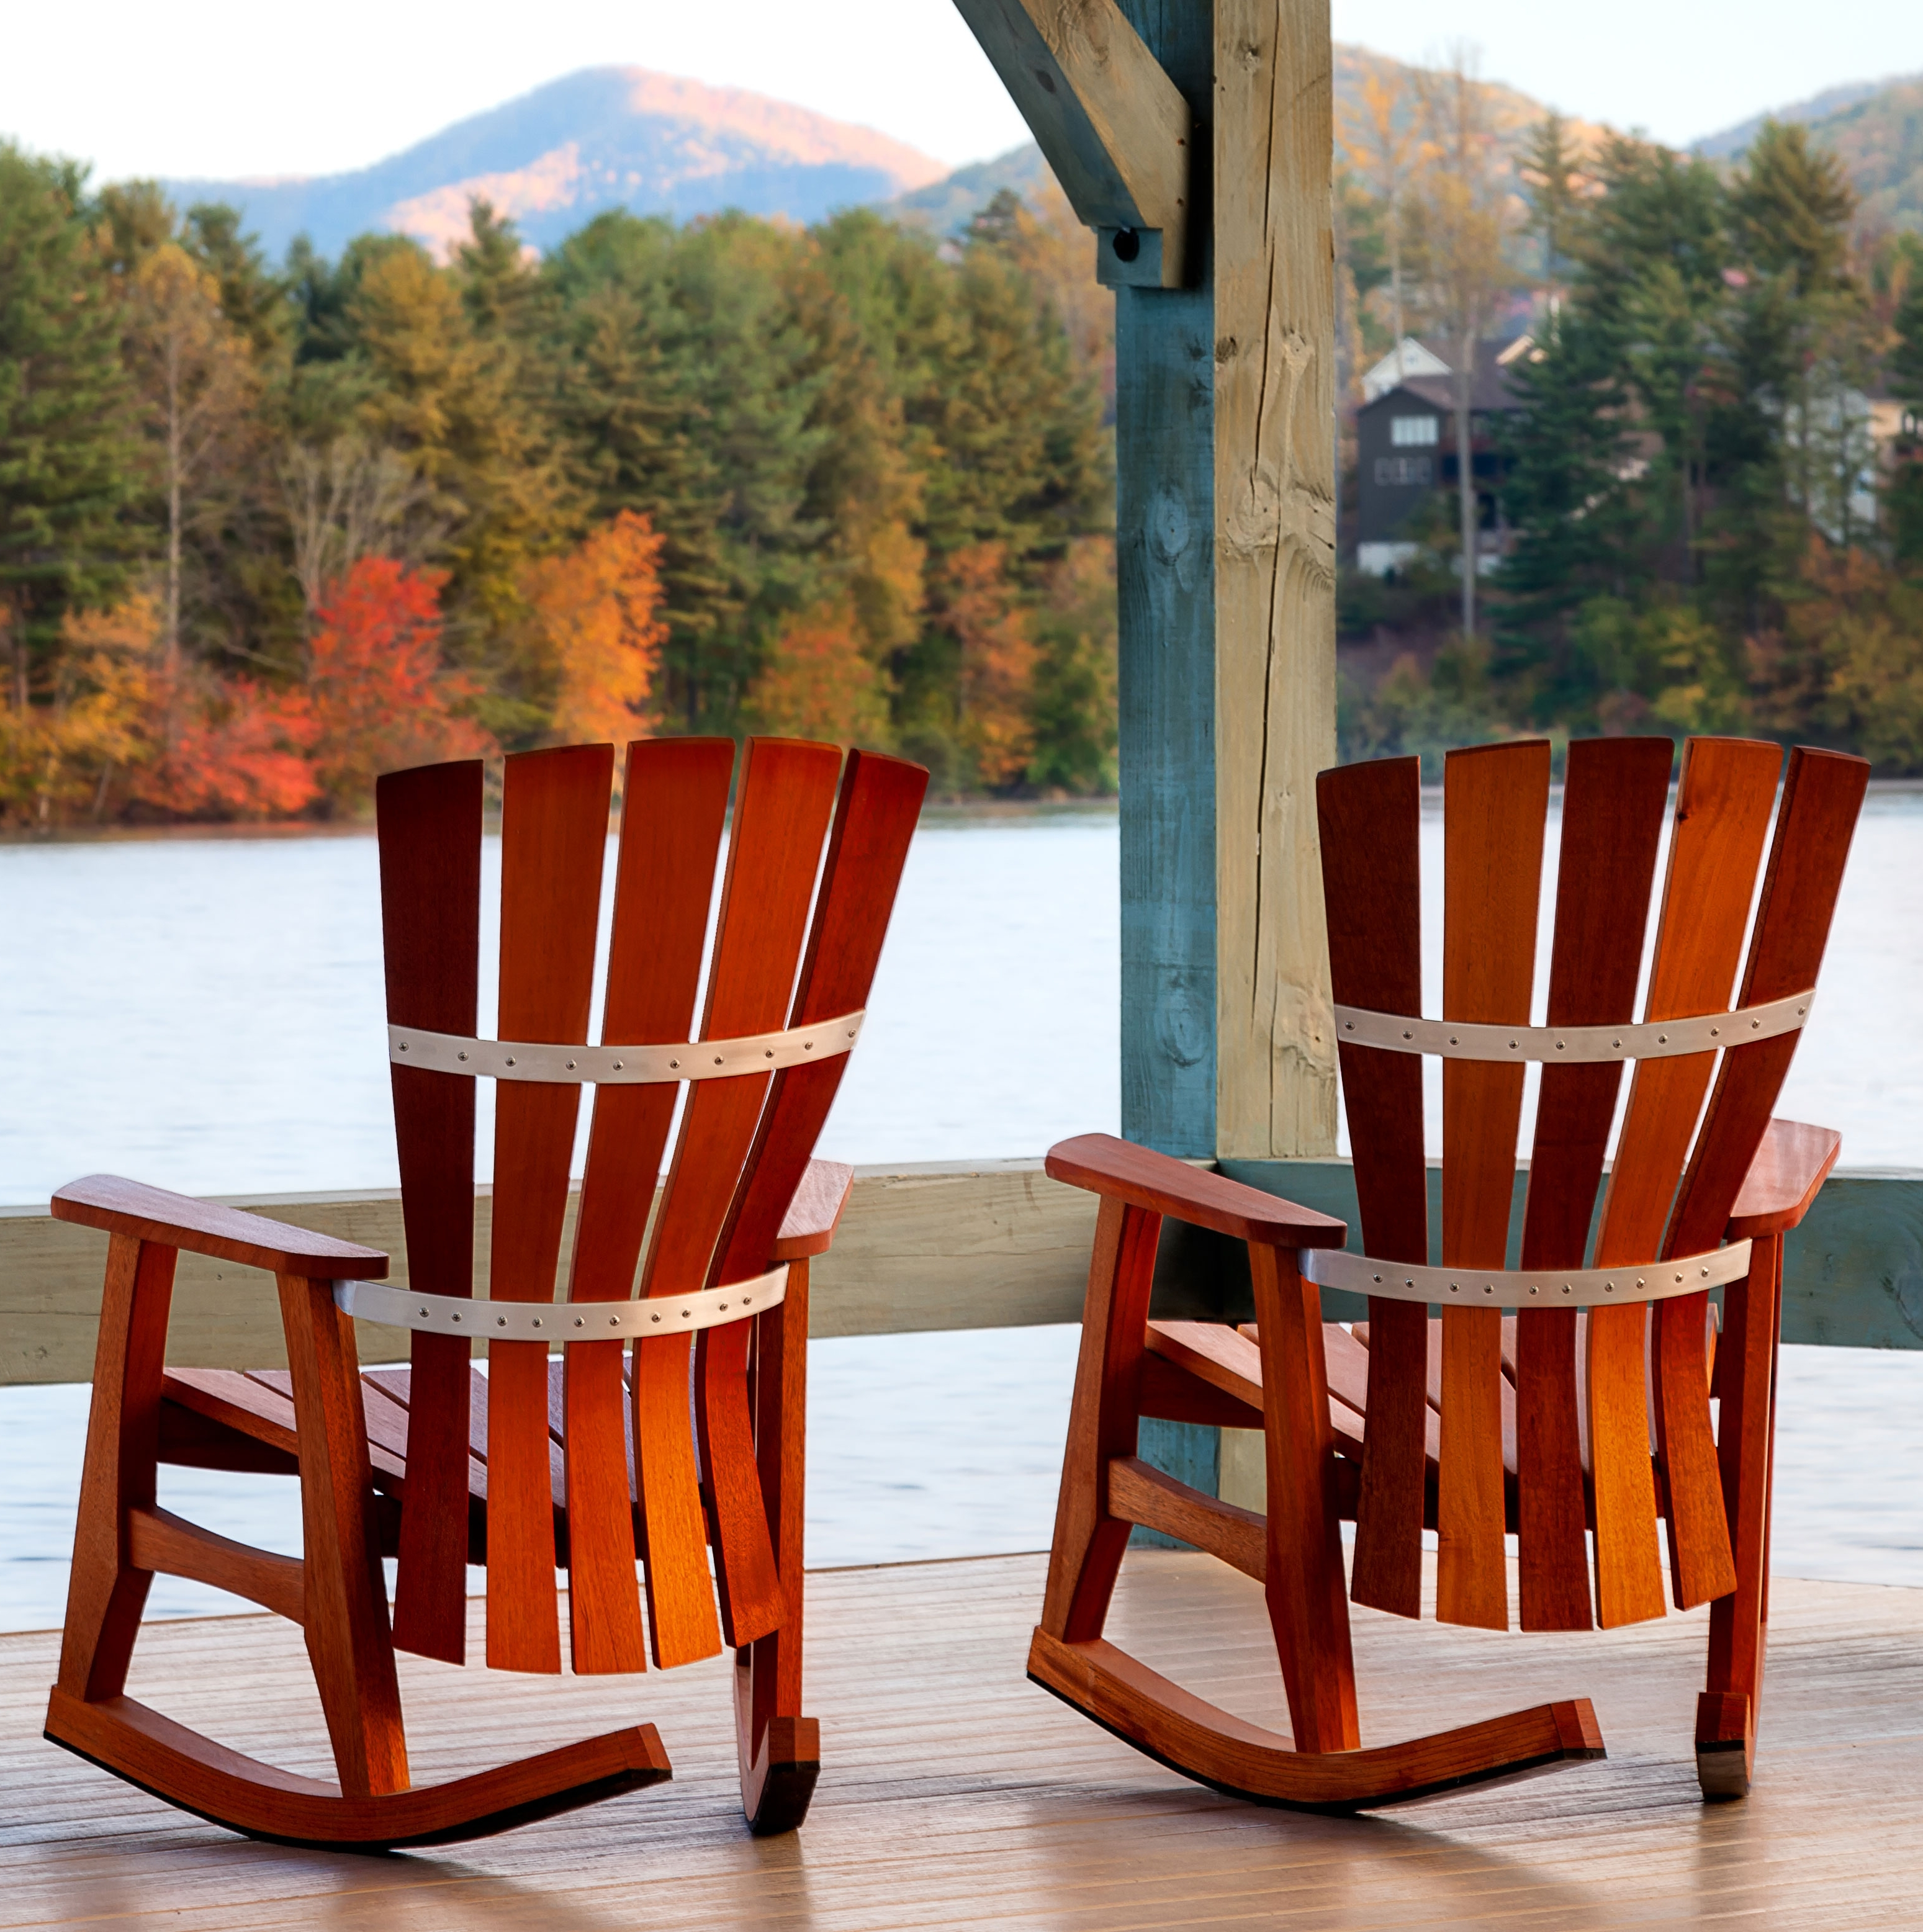 2018 Patio Furniture Rocking Chair Fibreglass Iron And Birch Material Intended For Outside Rocking Chair Sets (View 2 of 15)